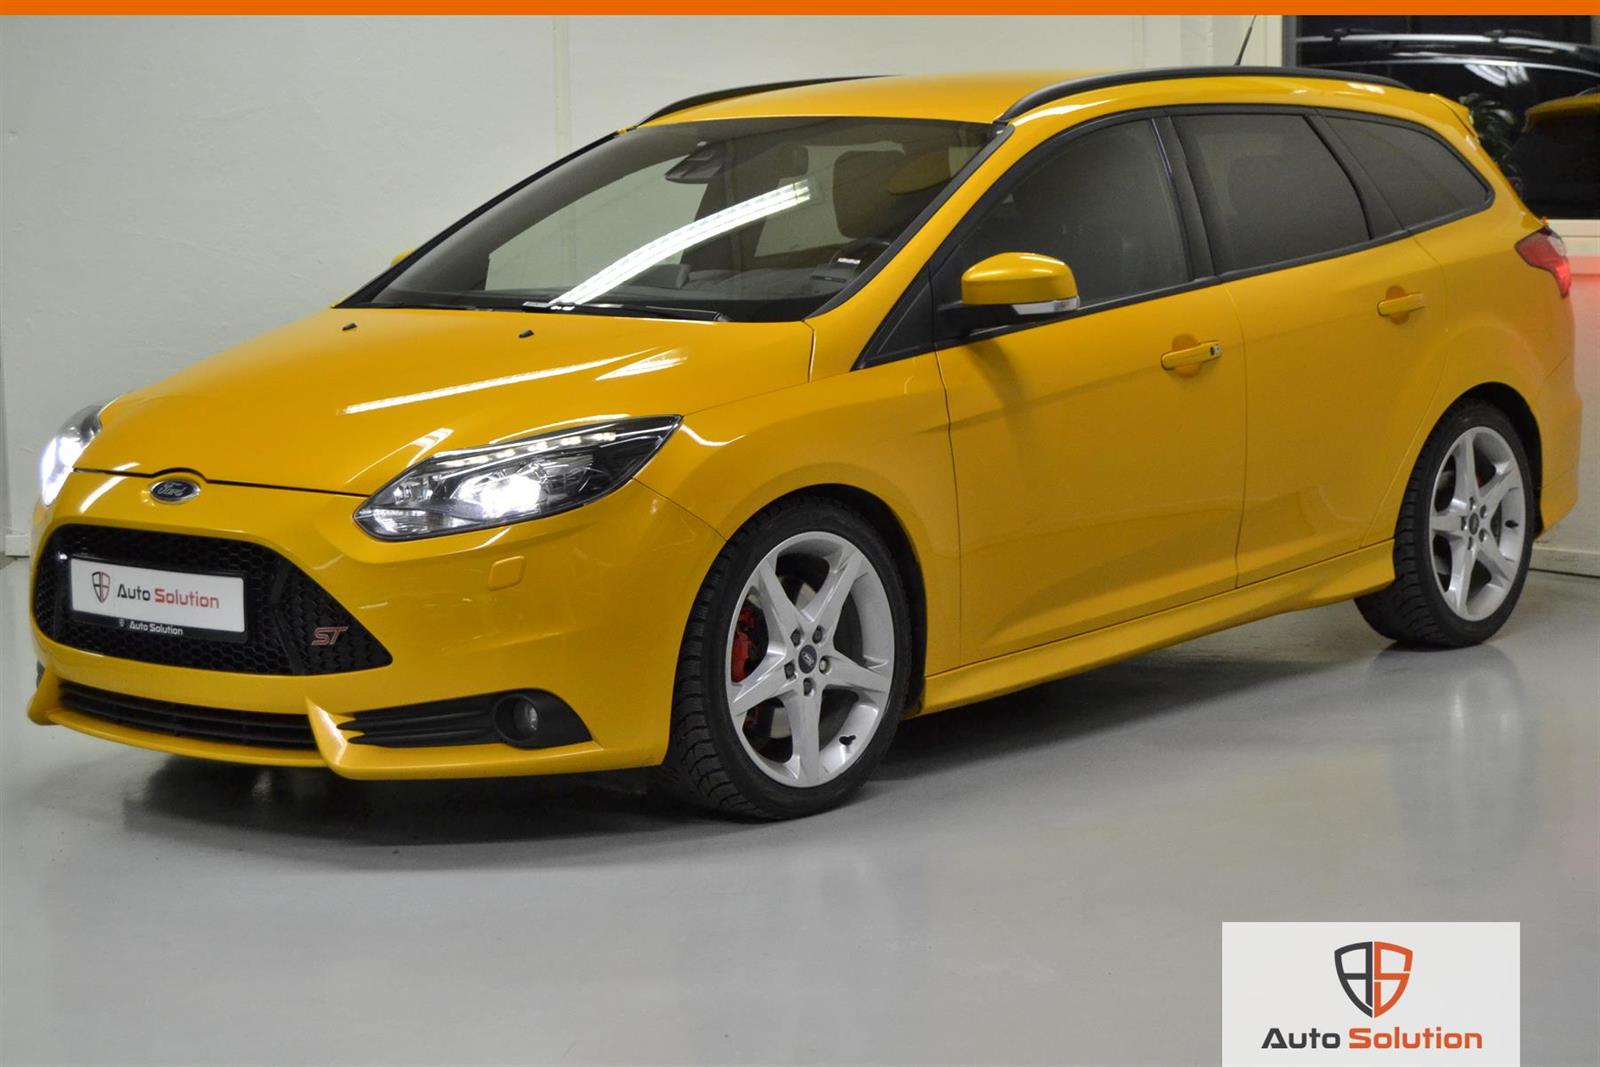 2013 ford focusauto solution